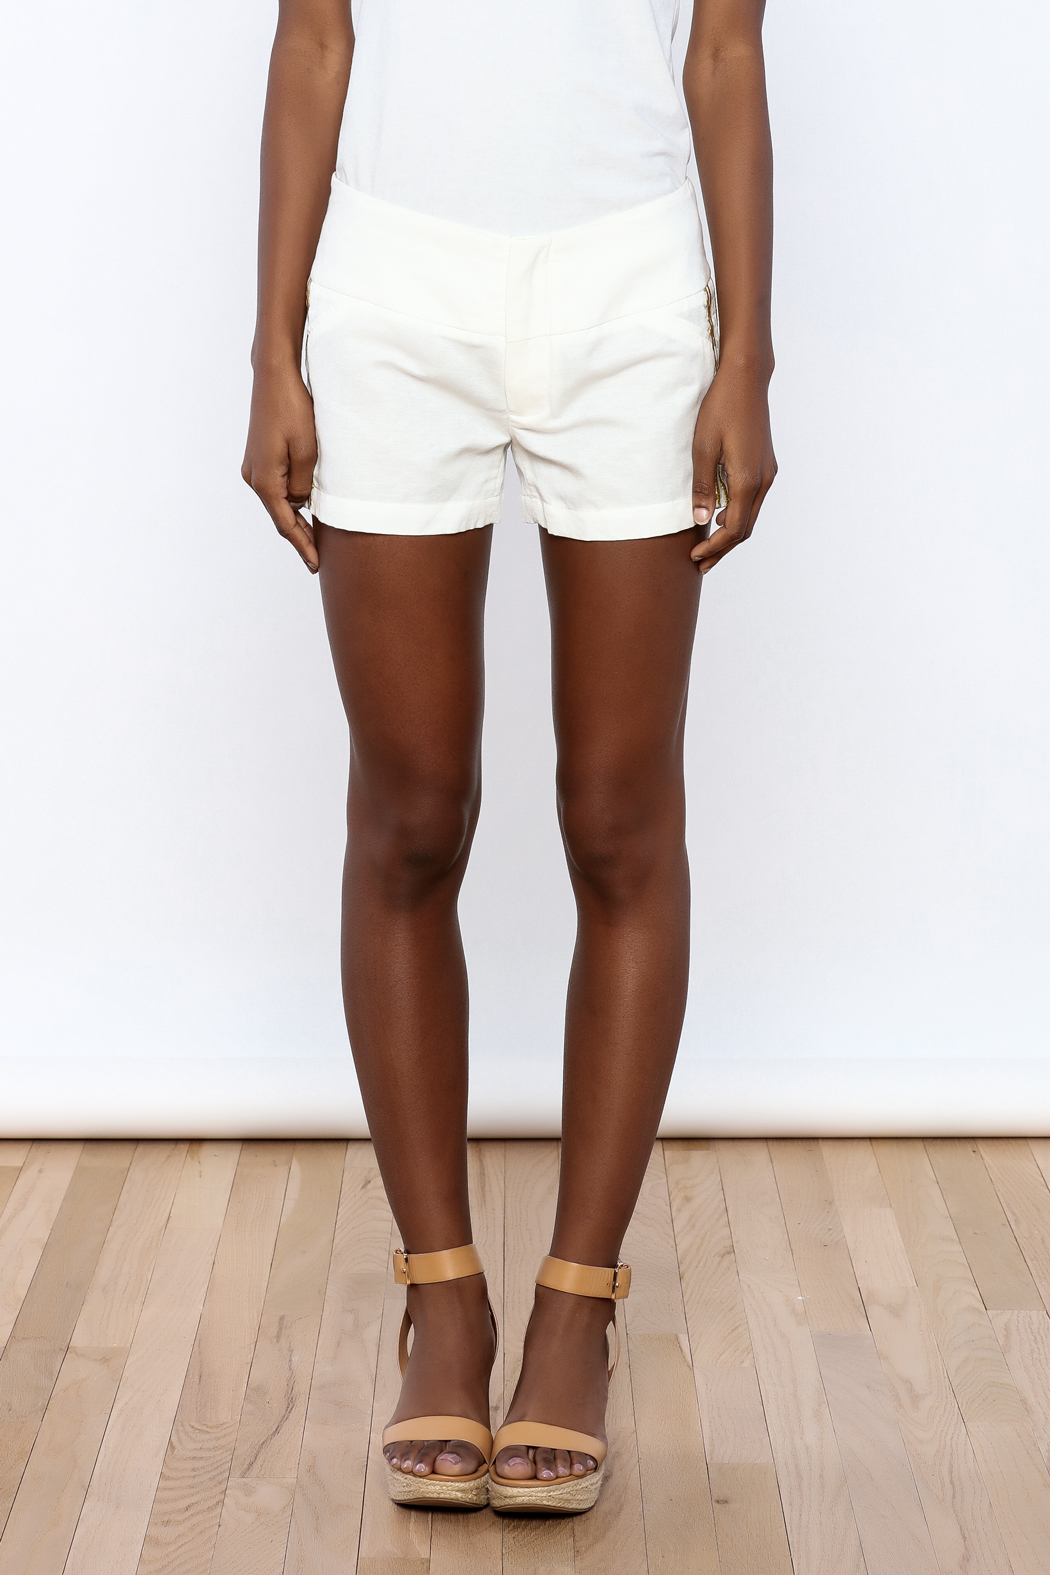 Julie Brown Designs Currie Shorts - Side Cropped Image